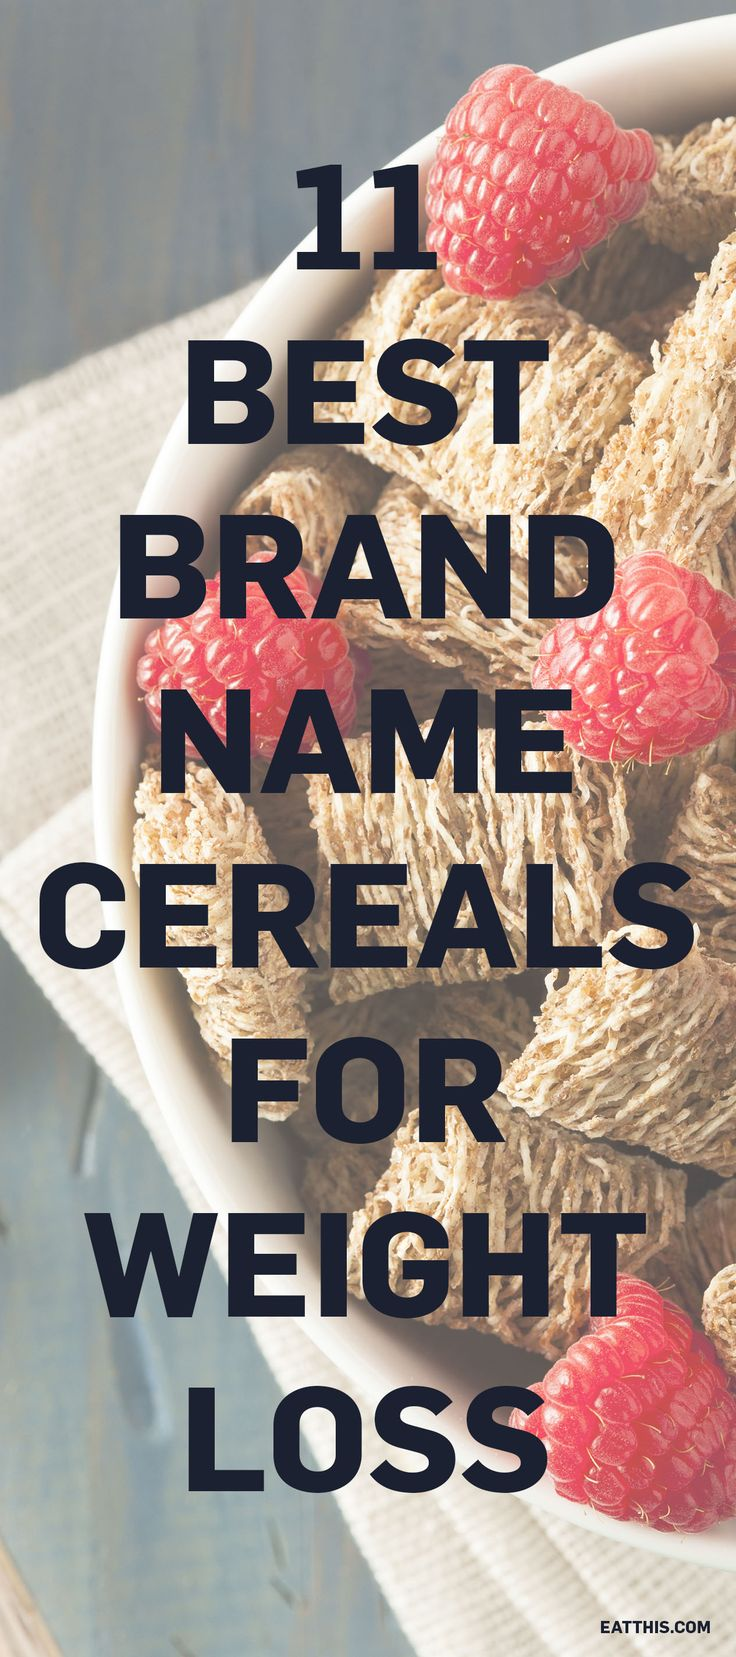 Can't get enough of your favorite breakfast cereal? Be sure your brand made our list to fuel your day right and reach your better body goals!